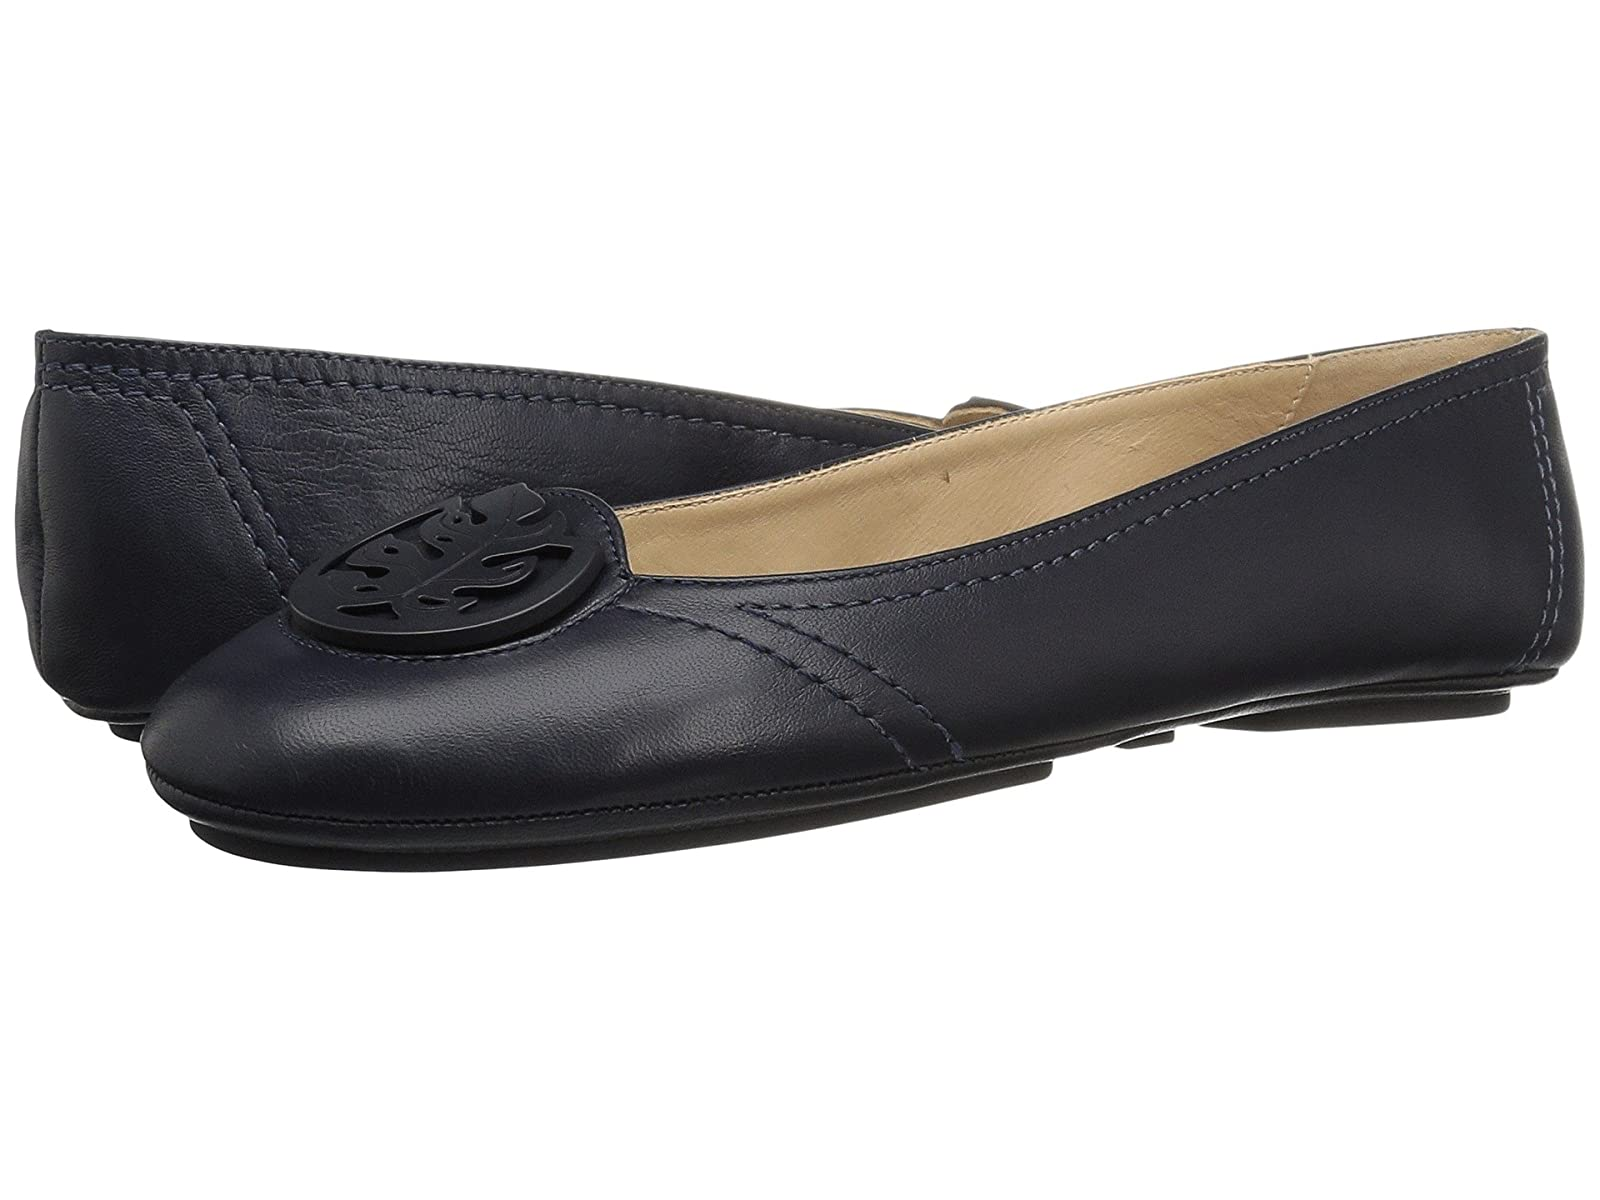 Tommy Bahama Athens FloralCheap and distinctive eye-catching shoes